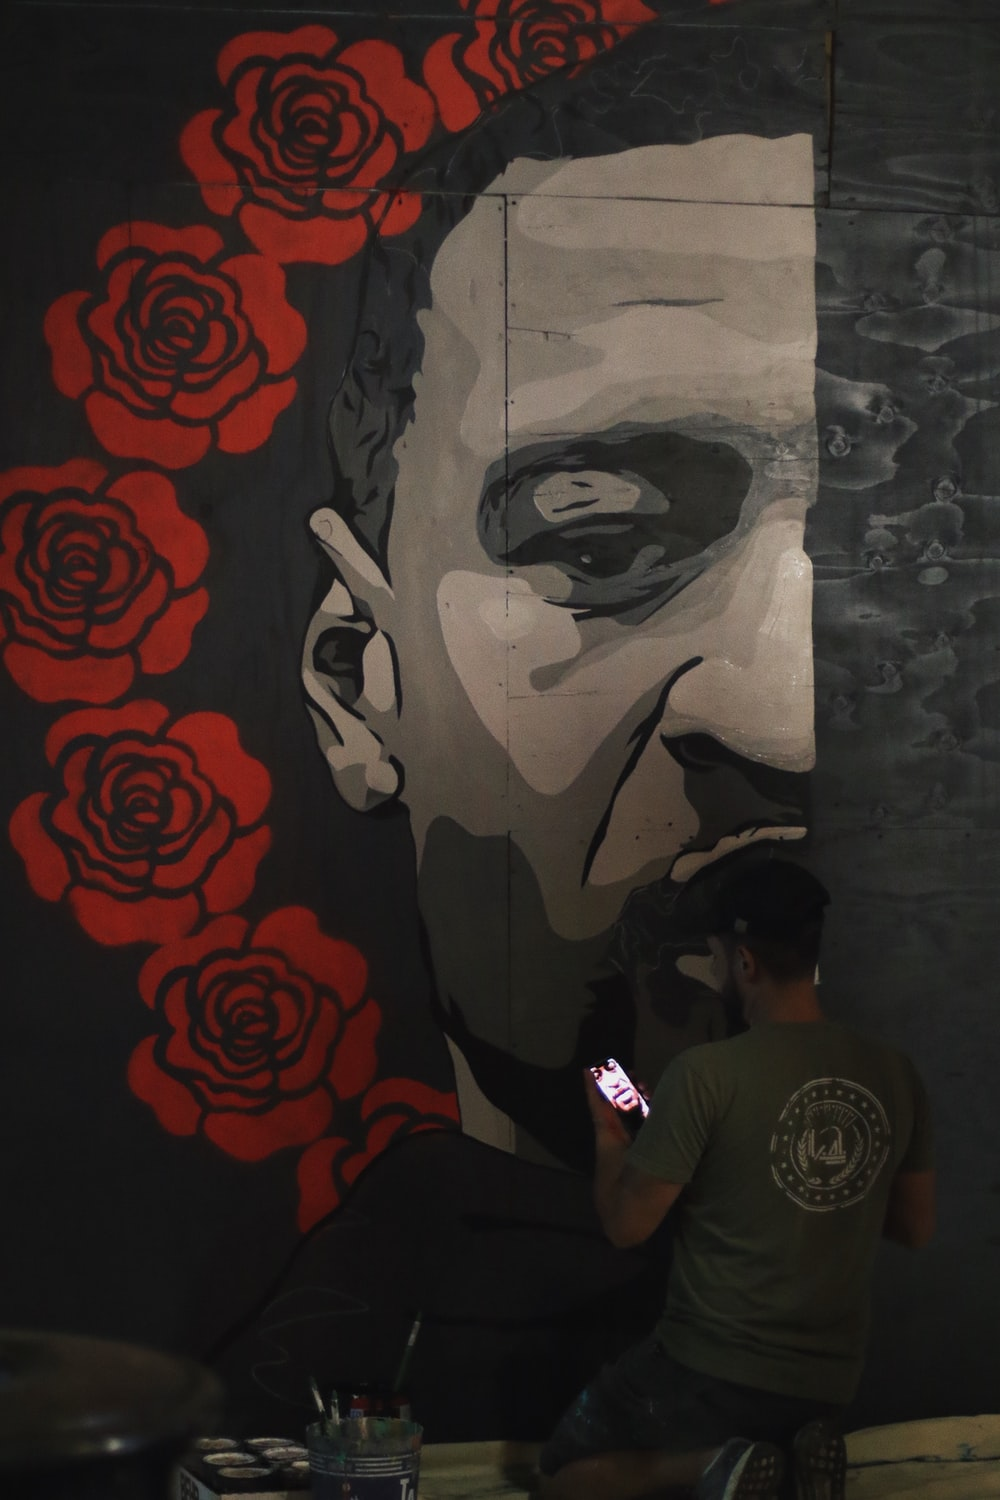 man in black crew neck t-shirt standing beside wall with graffiti